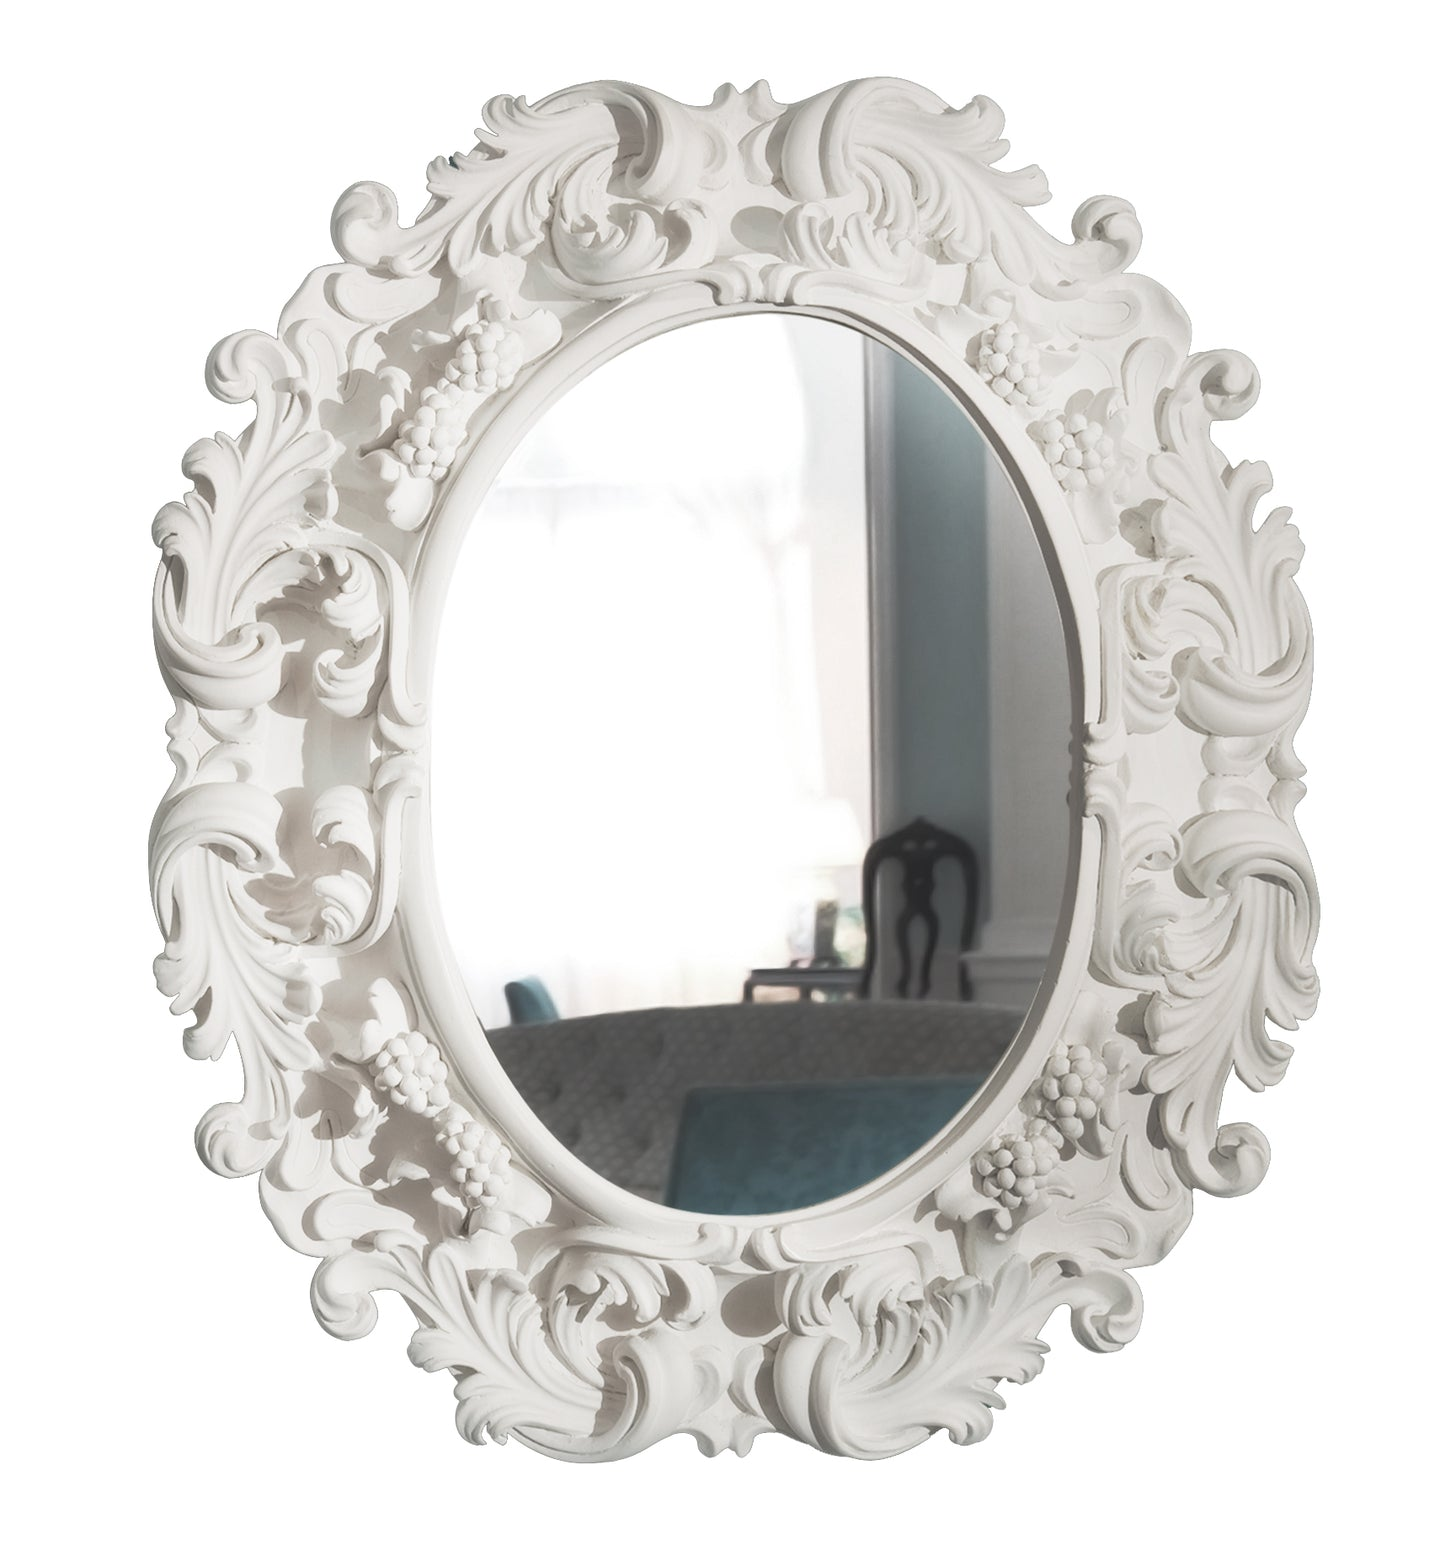 Lorraine with Grapes Oval Mirror